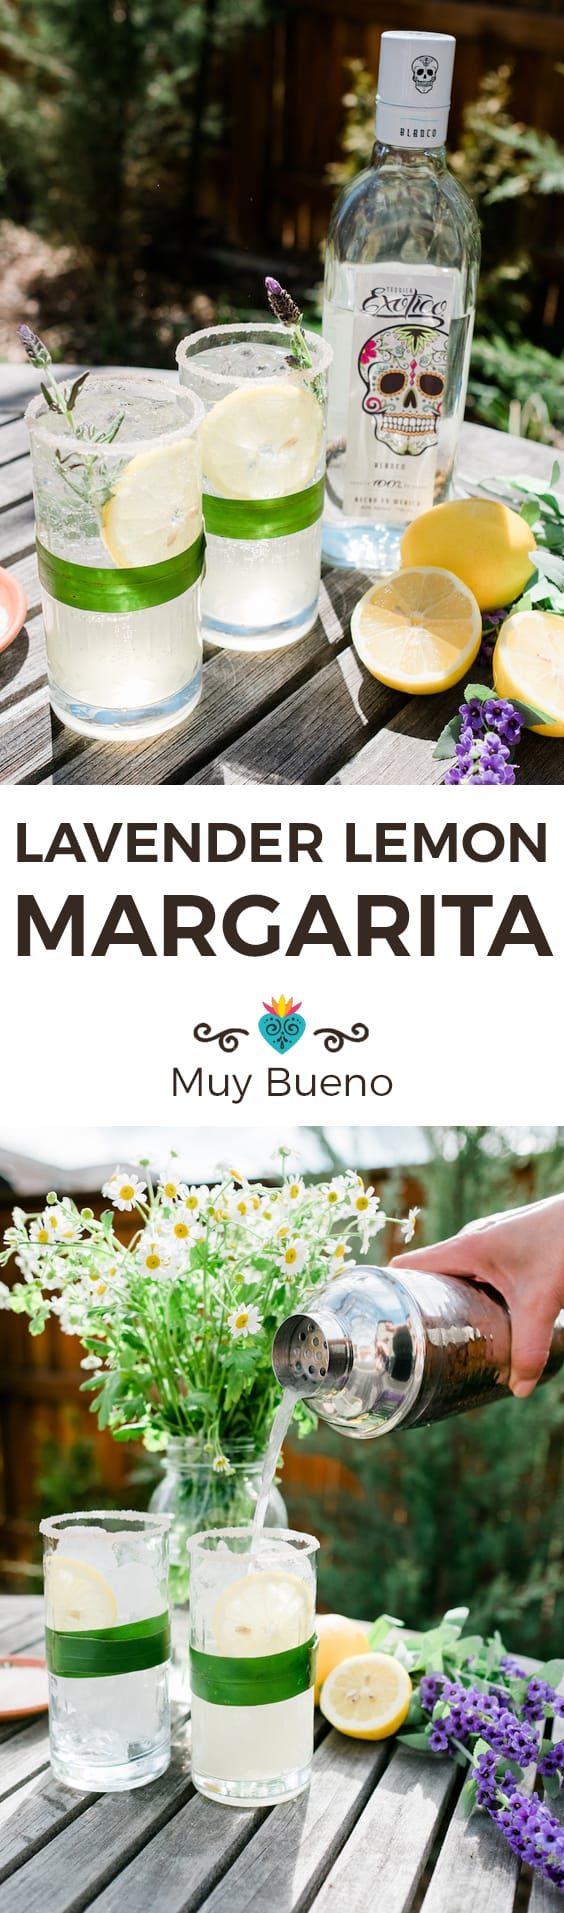 Lavender Lemon Margarita super long collage with text overlay